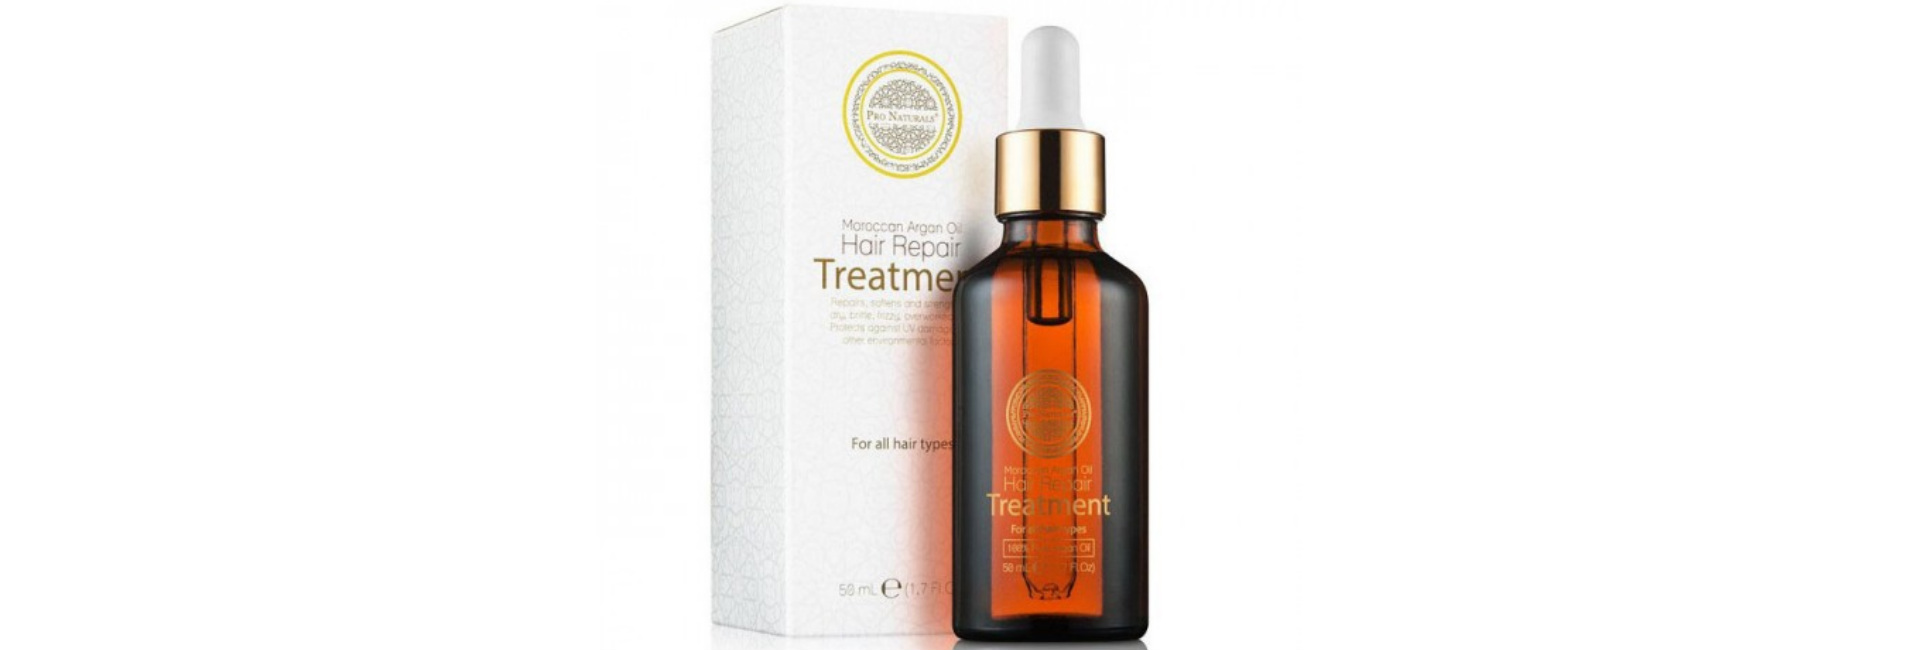 04132015_ProNaturalsMoroccanArganOilHairTreatment_ProductReview